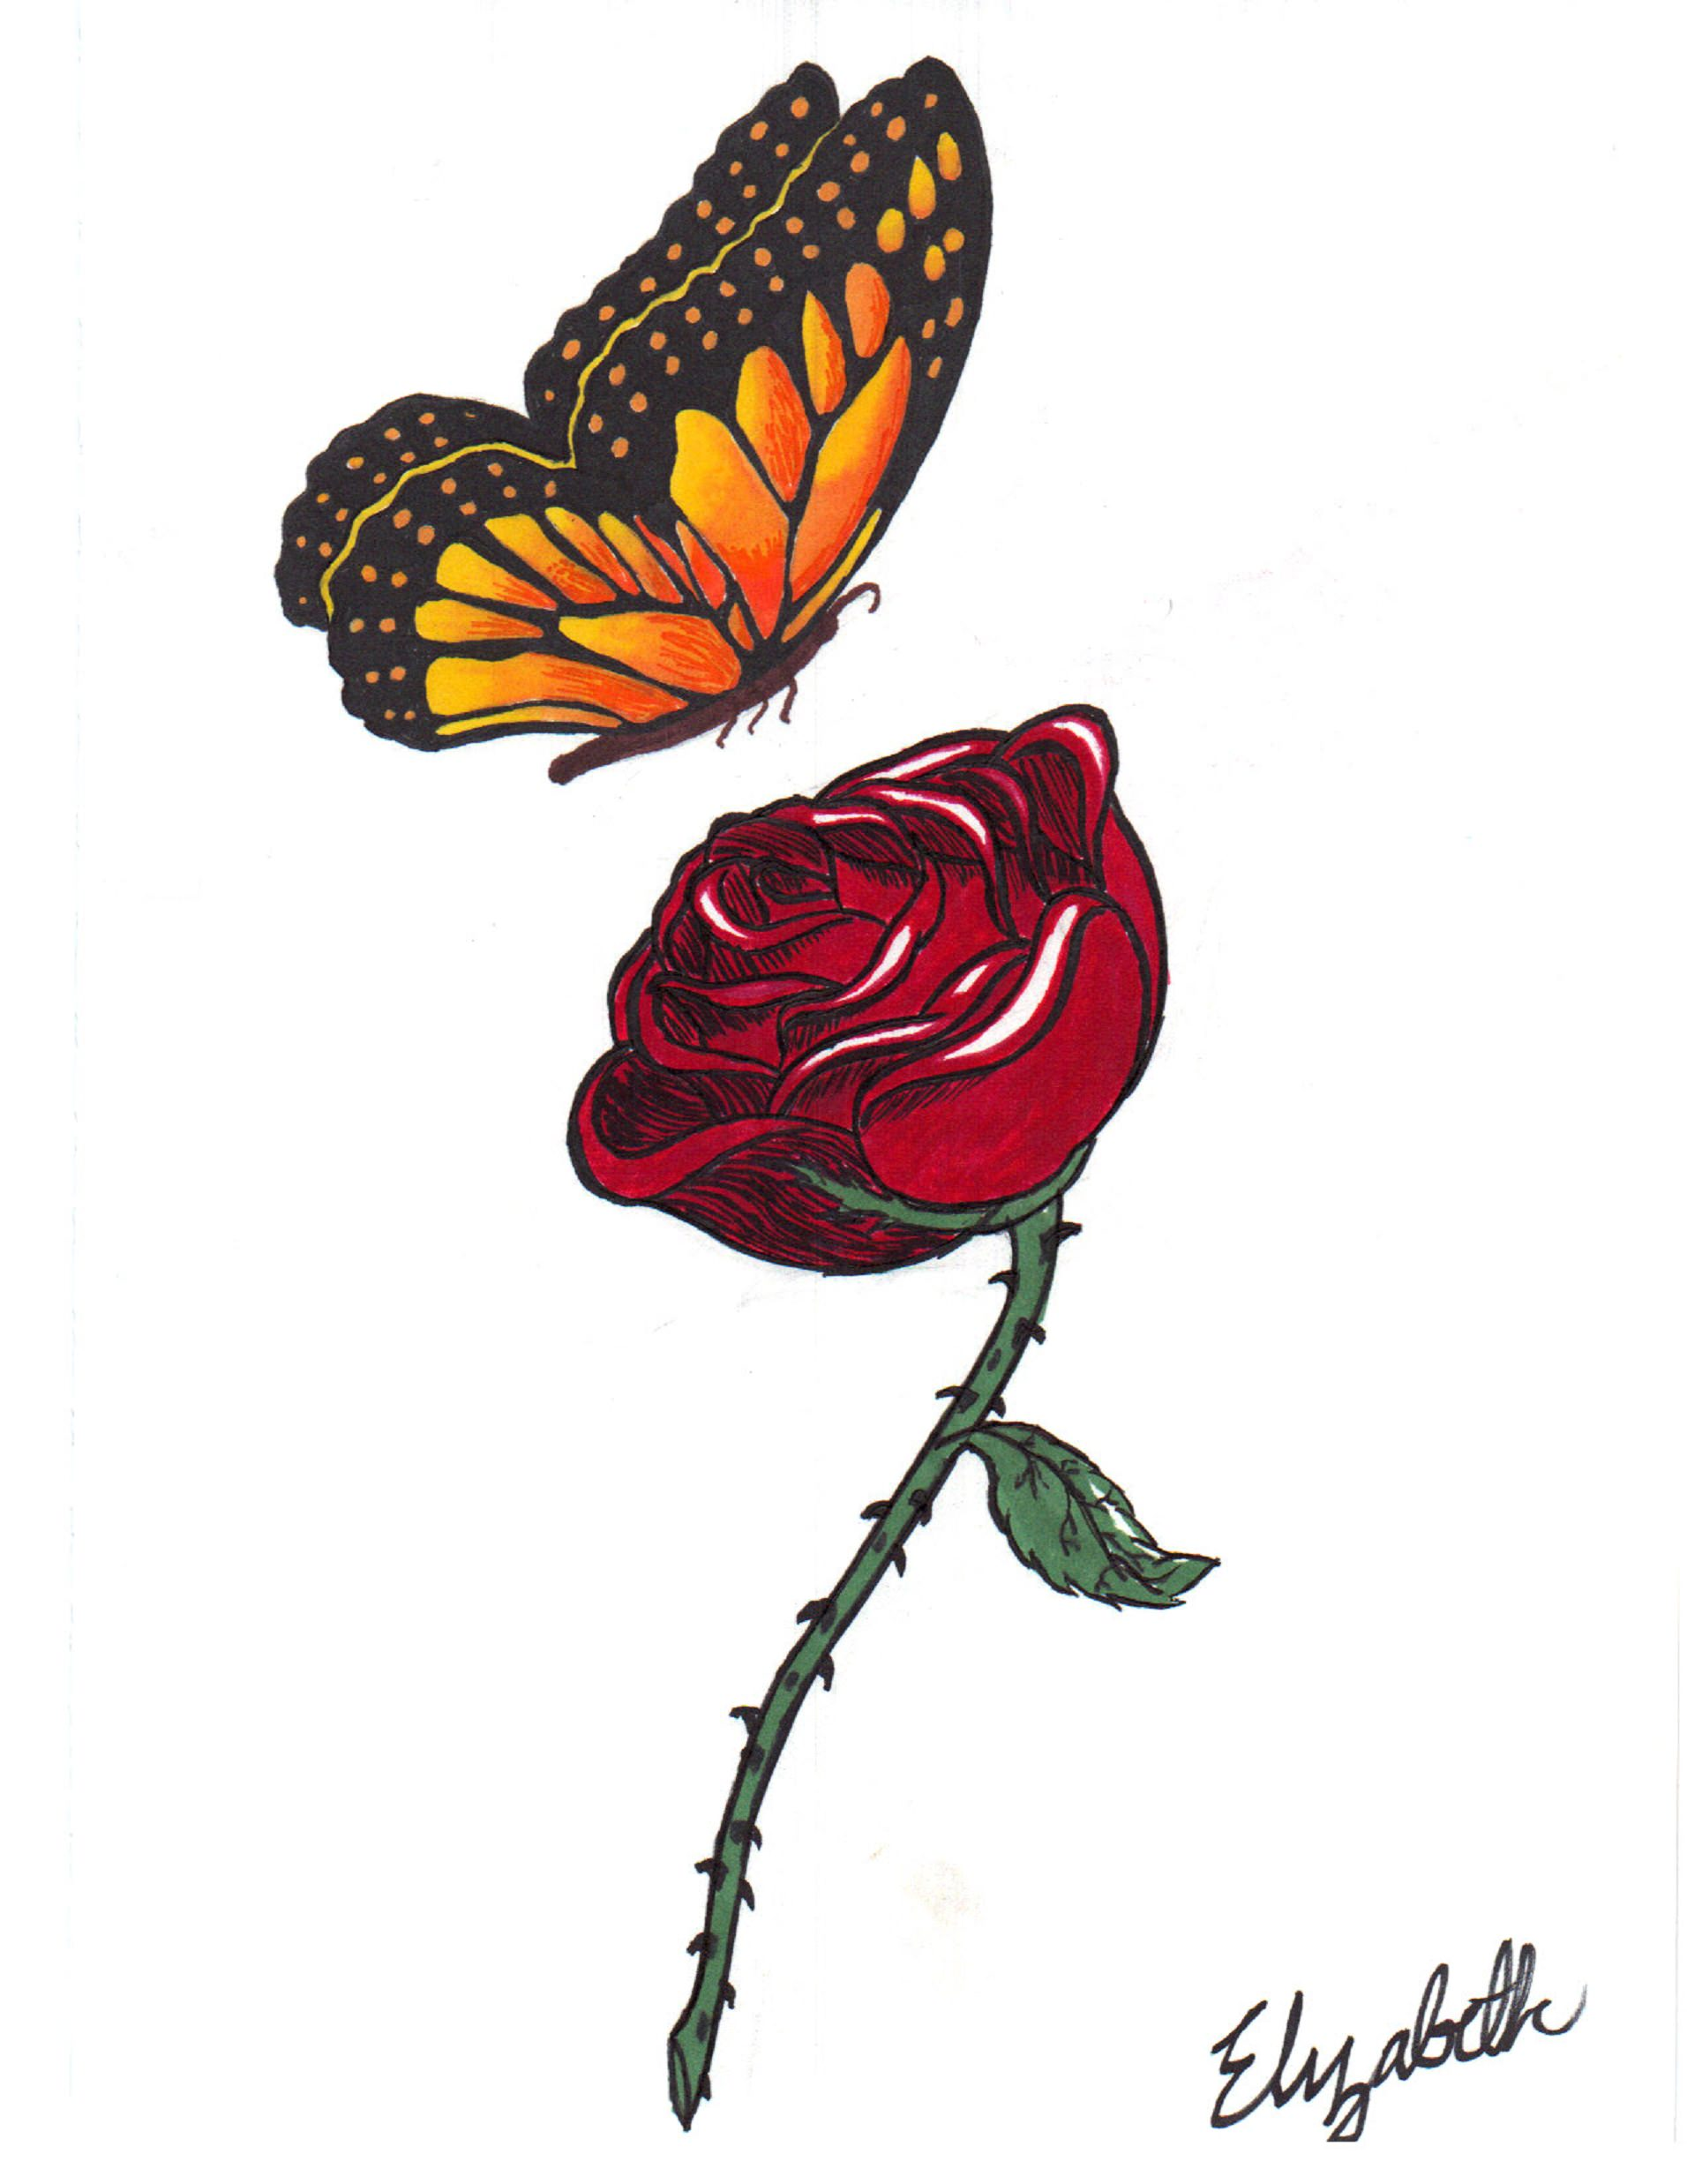 hight resolution of 18 butterfly drawings art ideas